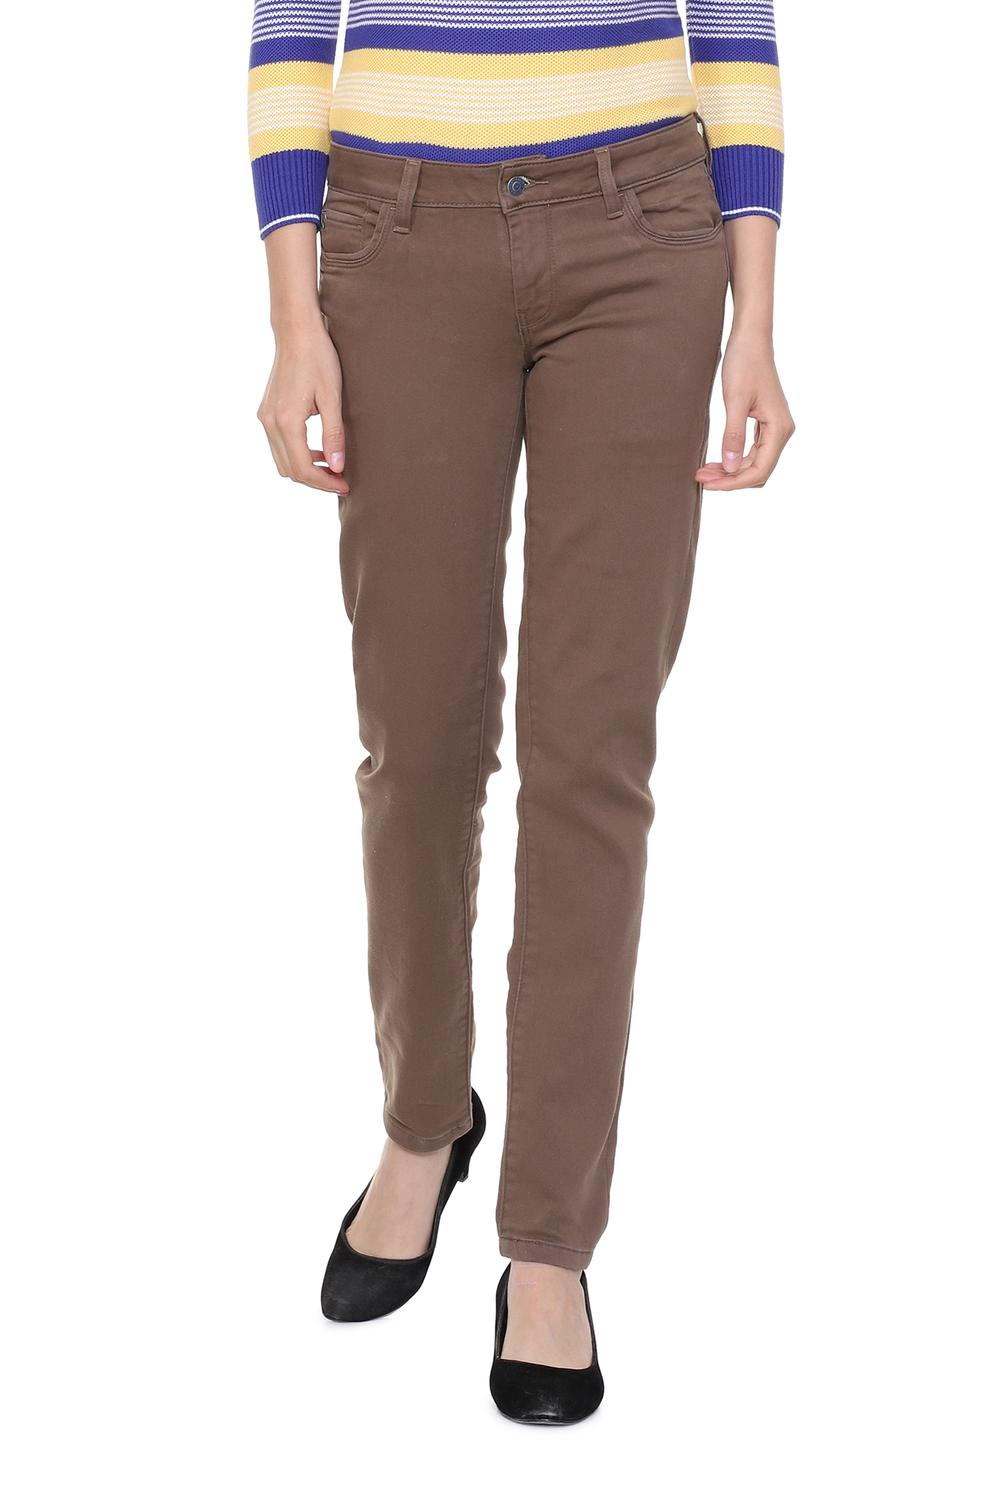 Solly Jeans Jeggings Allen Solly Brown Jeans For Women At Allensolly Com